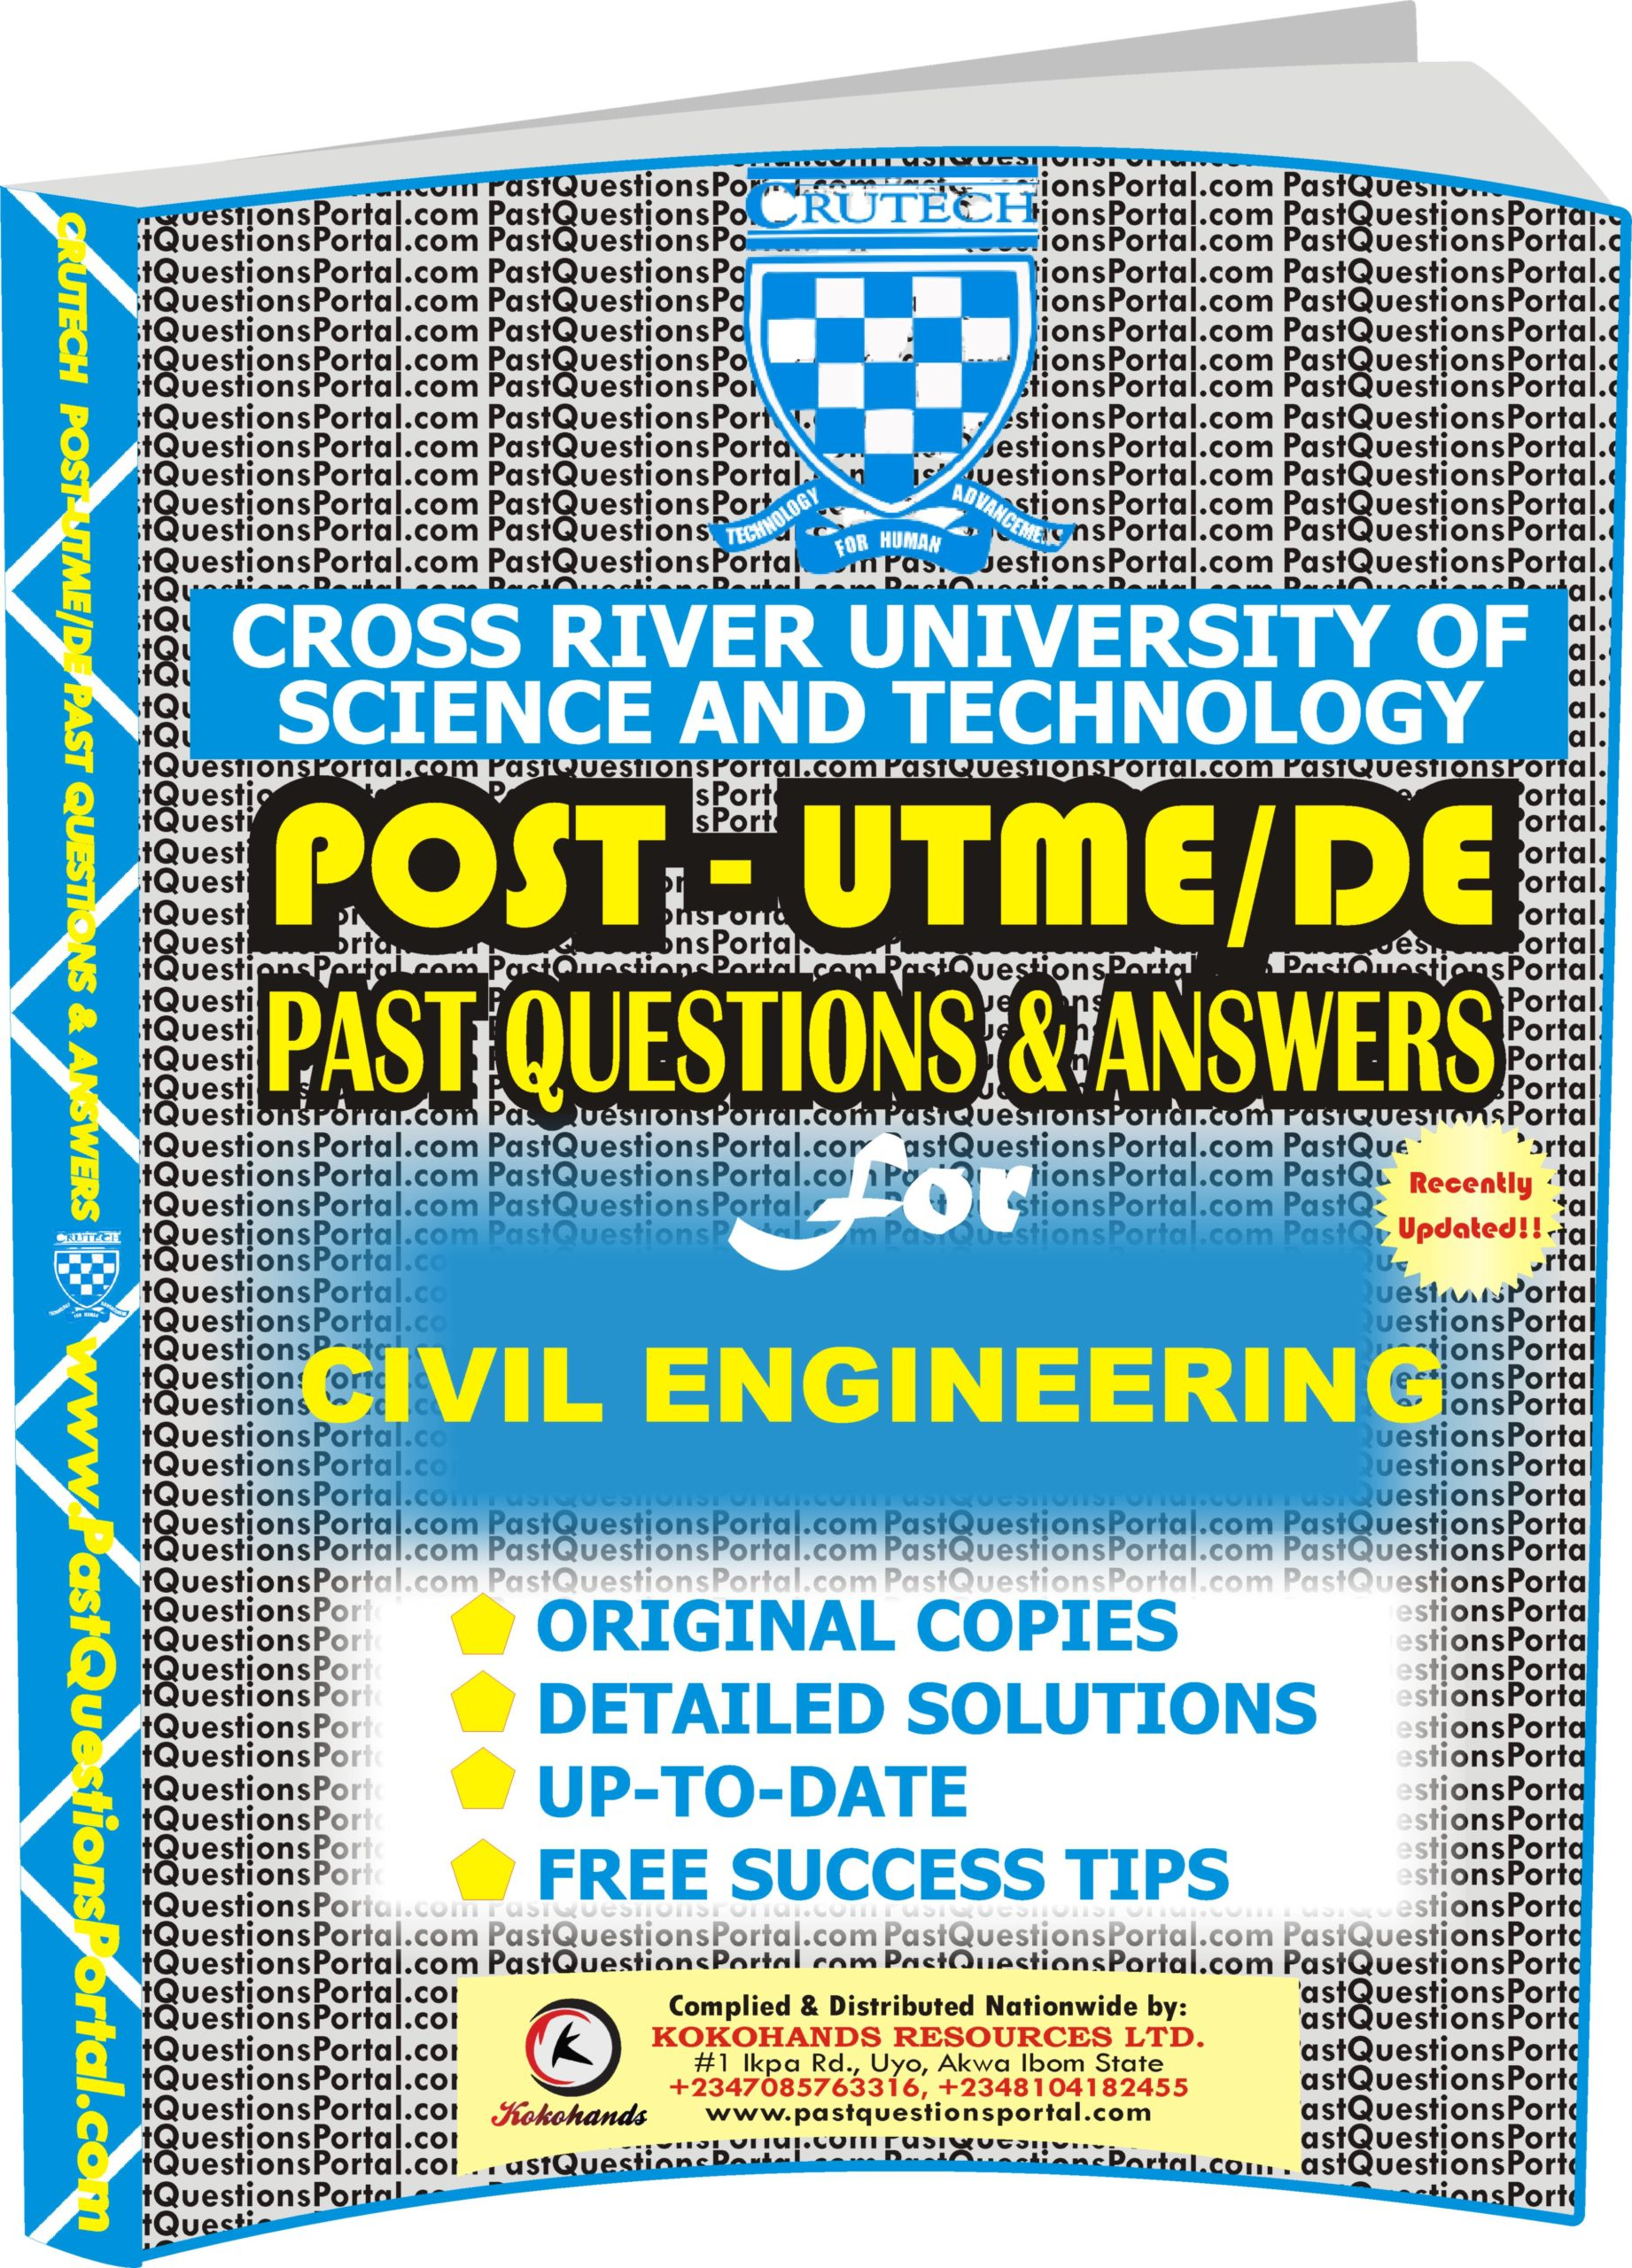 CRUTECH Post UTME Past Questions for CIVIL ENGINEERING